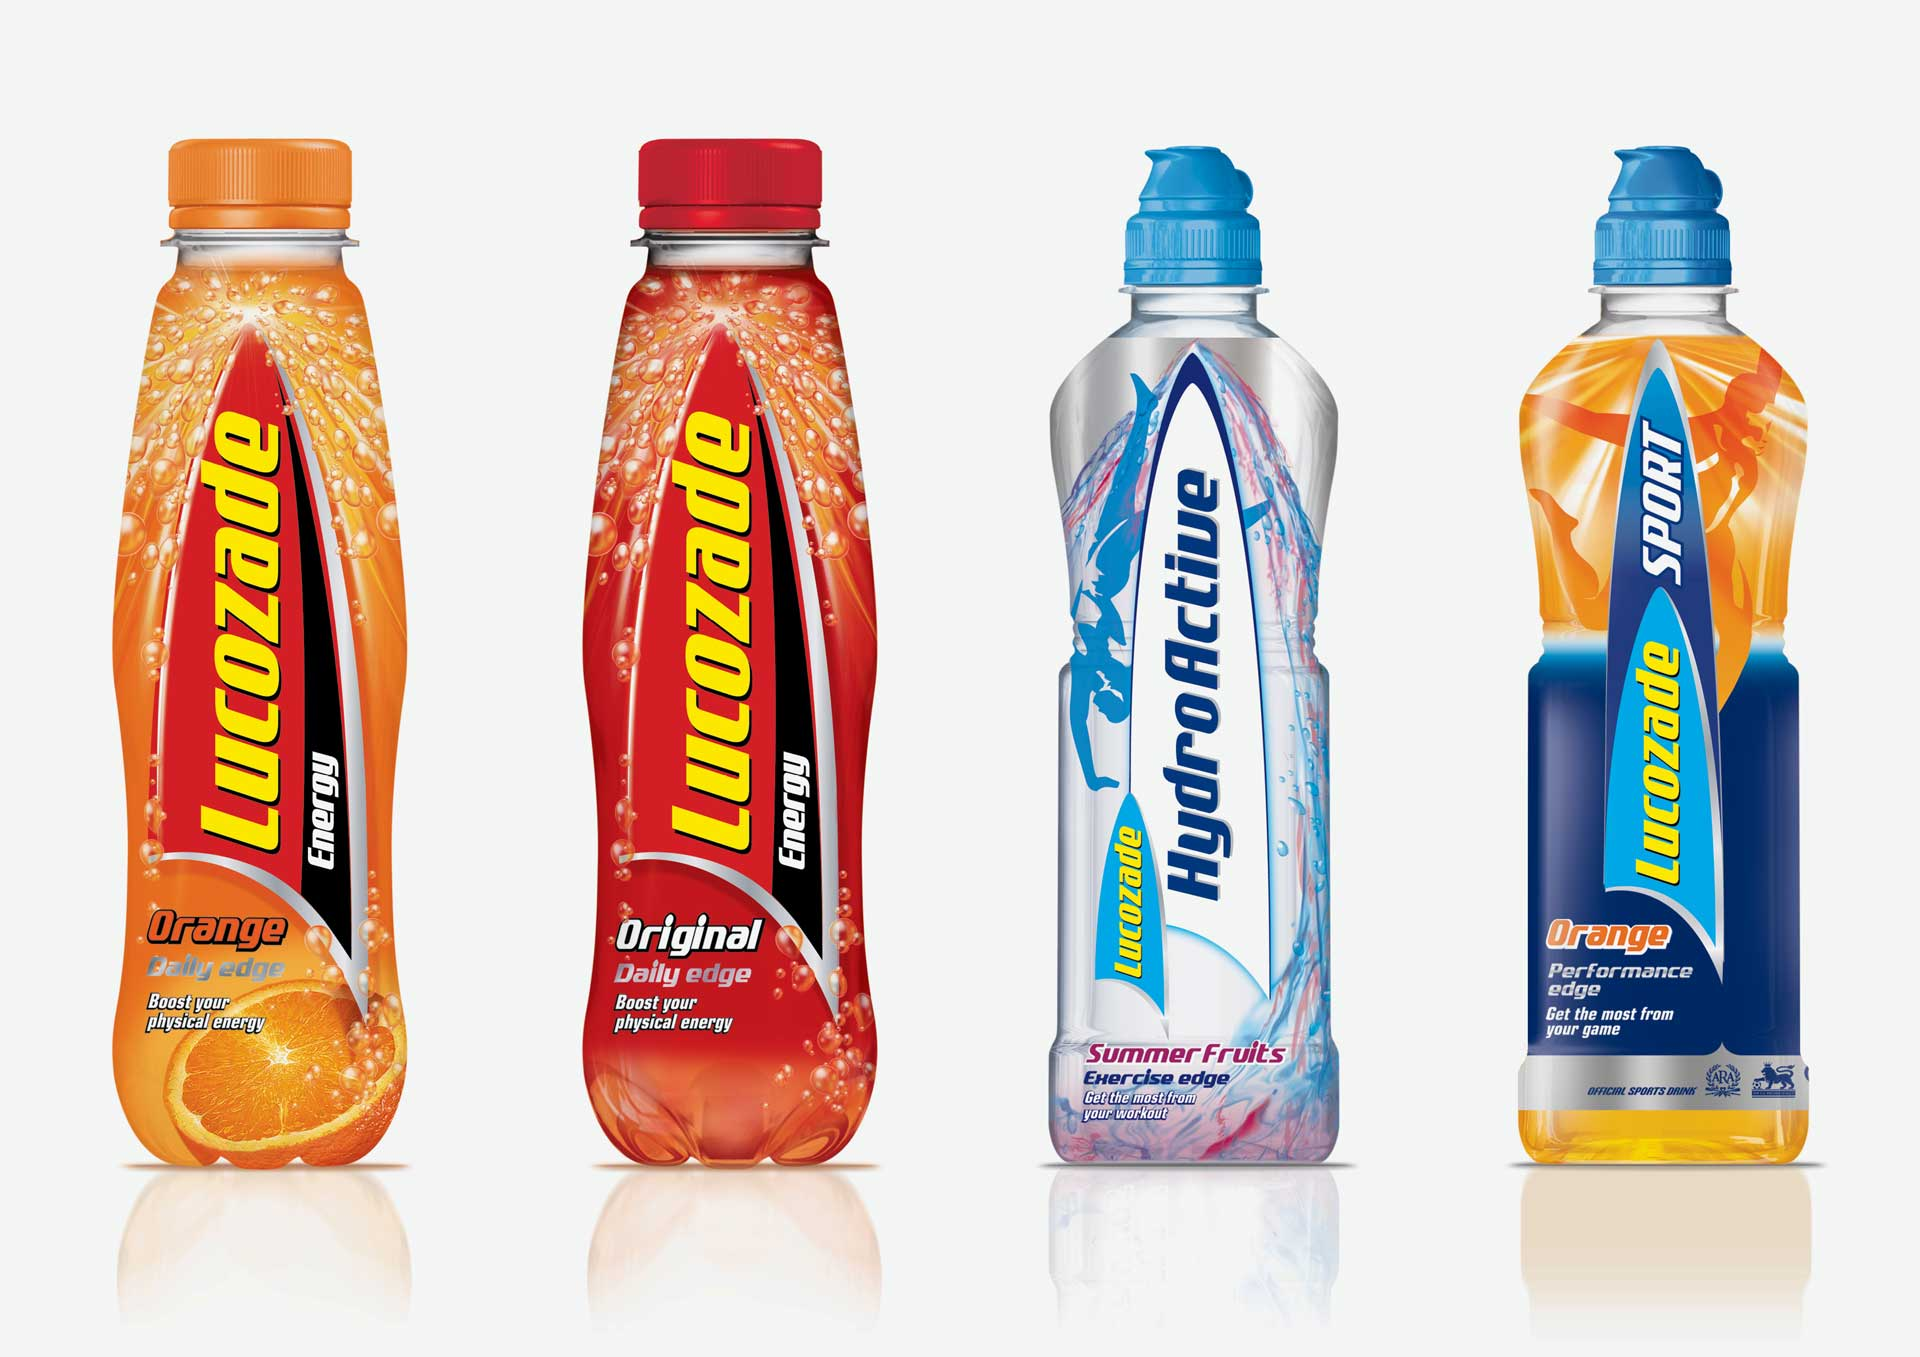 lucozade-packaging-bottles-2